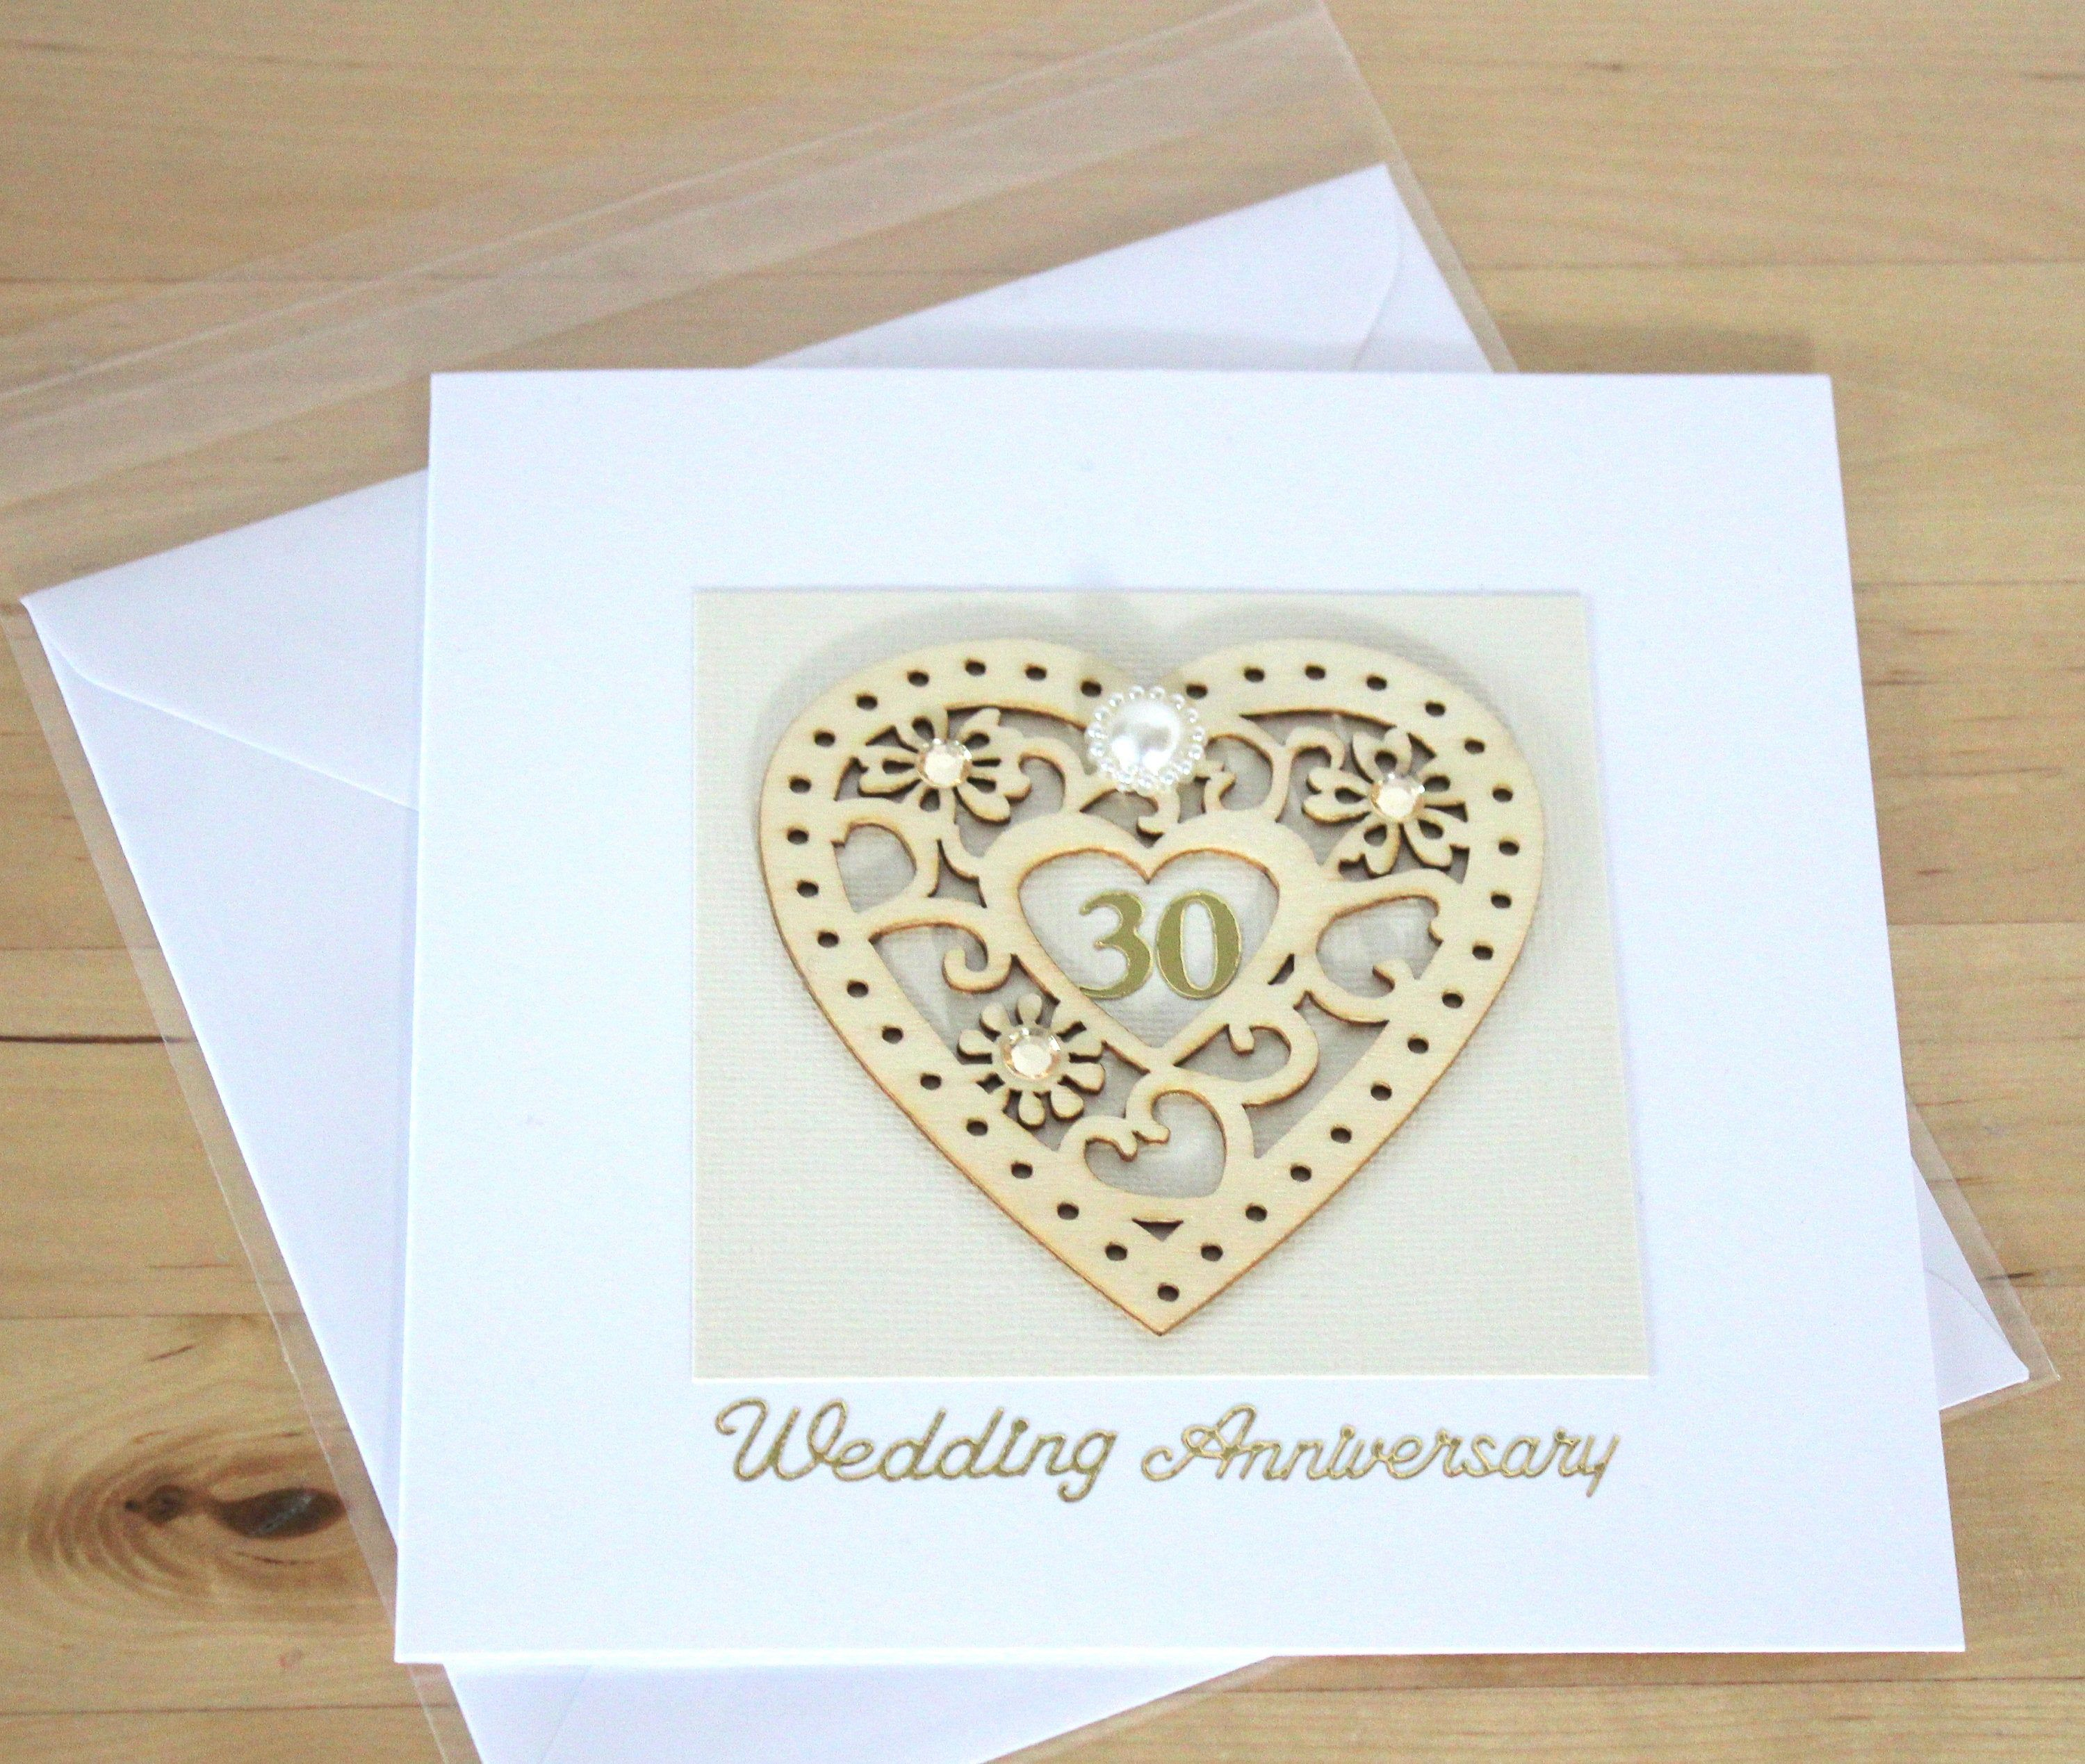 30th wedding anniversary cards for parents Ideas 2019